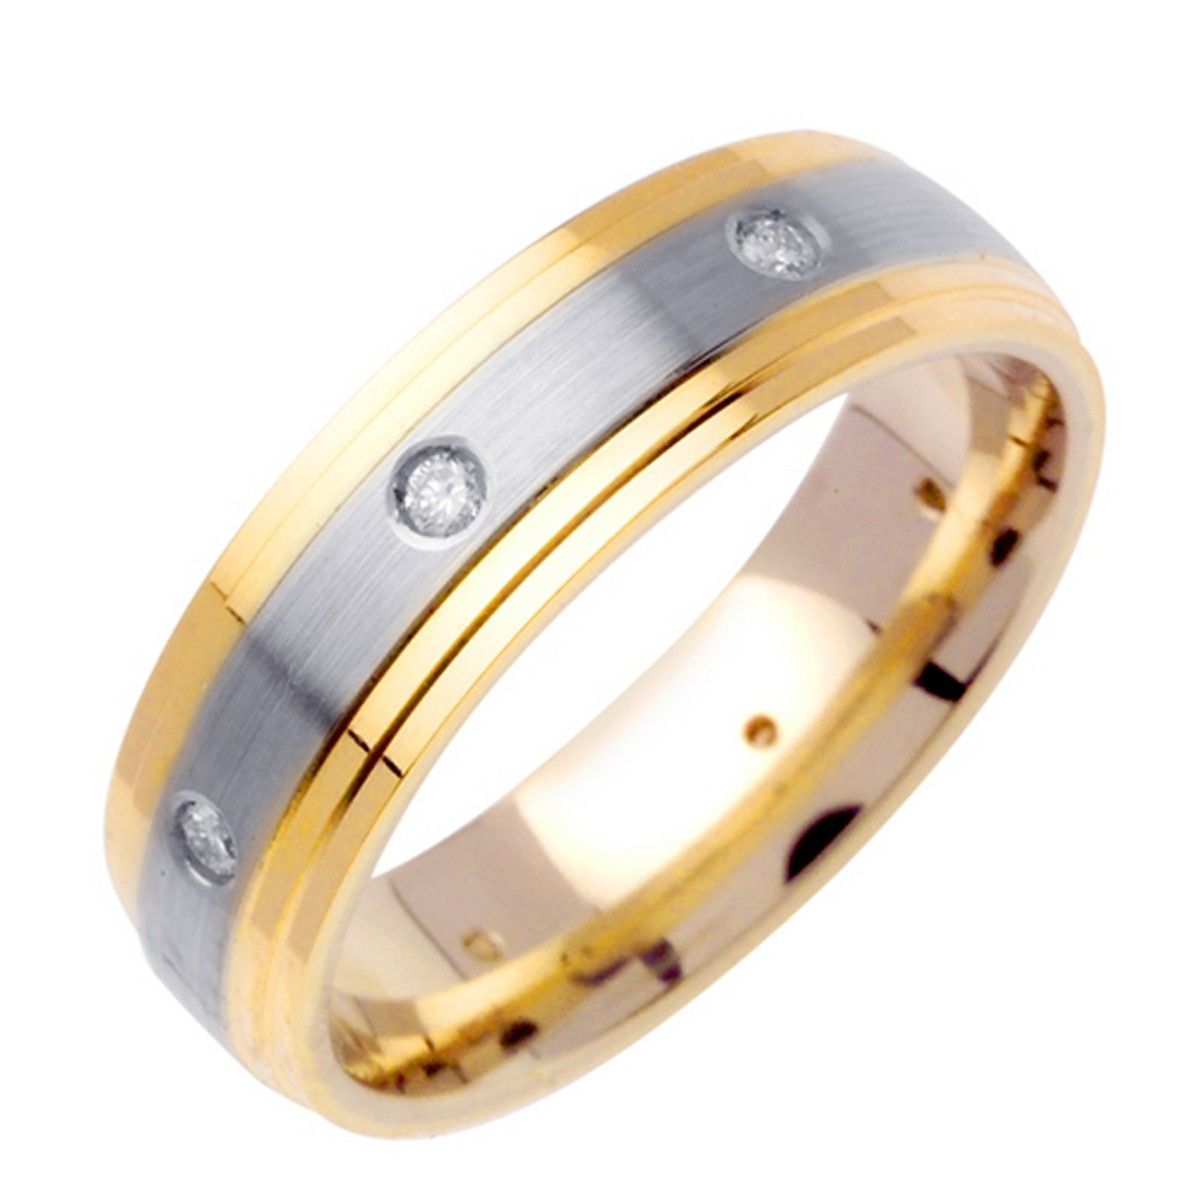 diamond of round gold ring jewellery rings in mens s channel set wedding white ctw men best